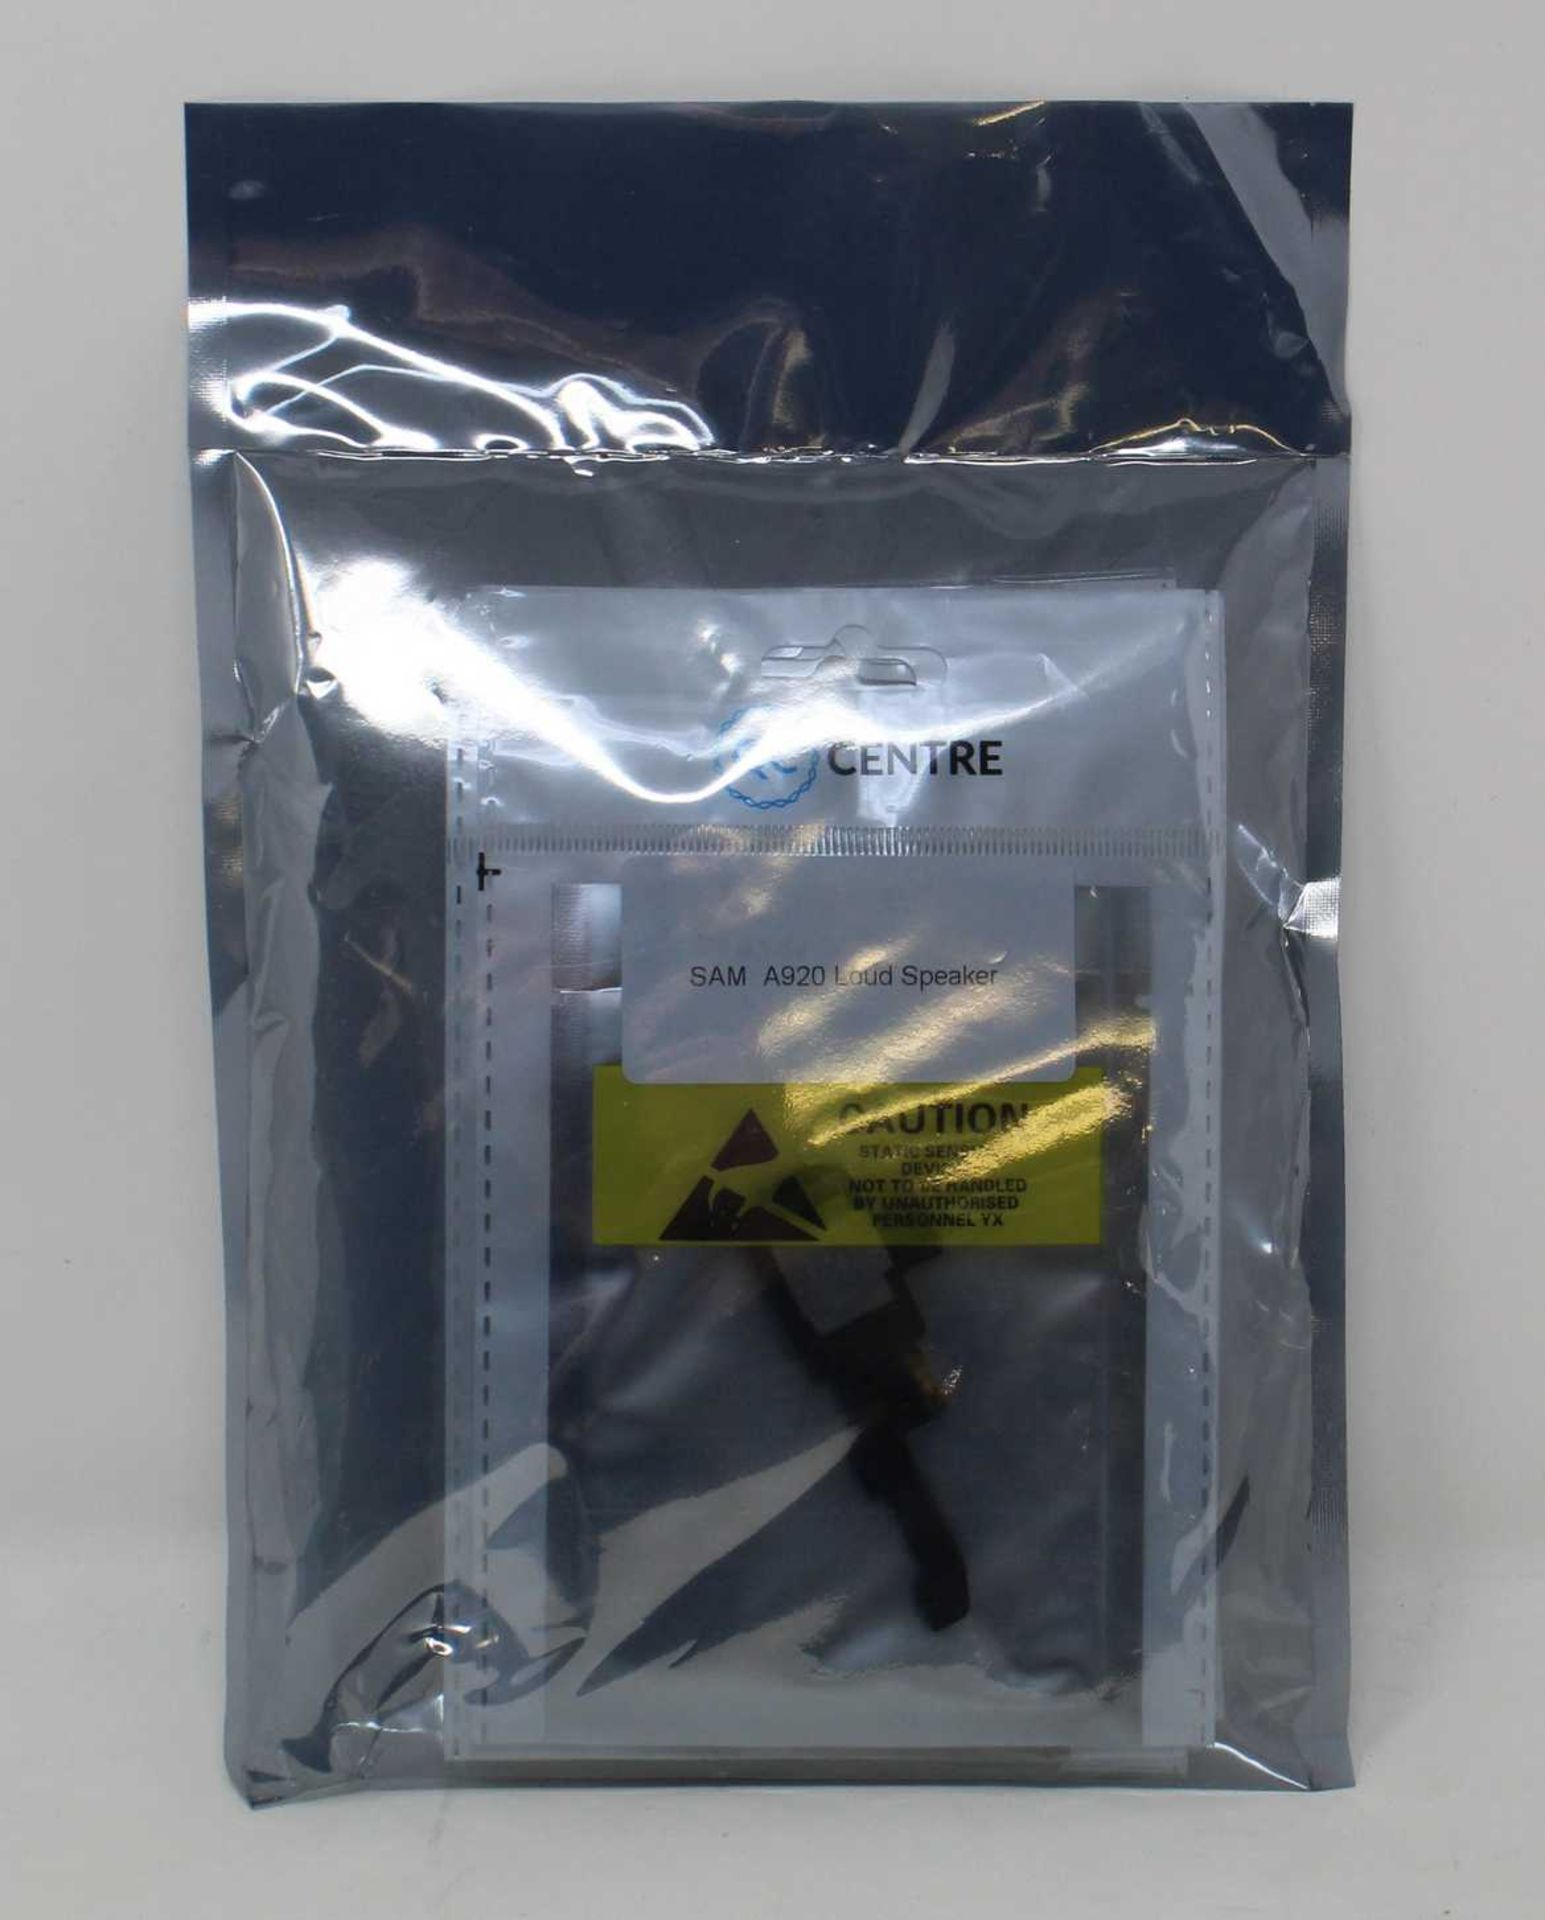 Ten as new QC Centre replacement display connector flex cables for Samsung A920 (Packaging sealed).